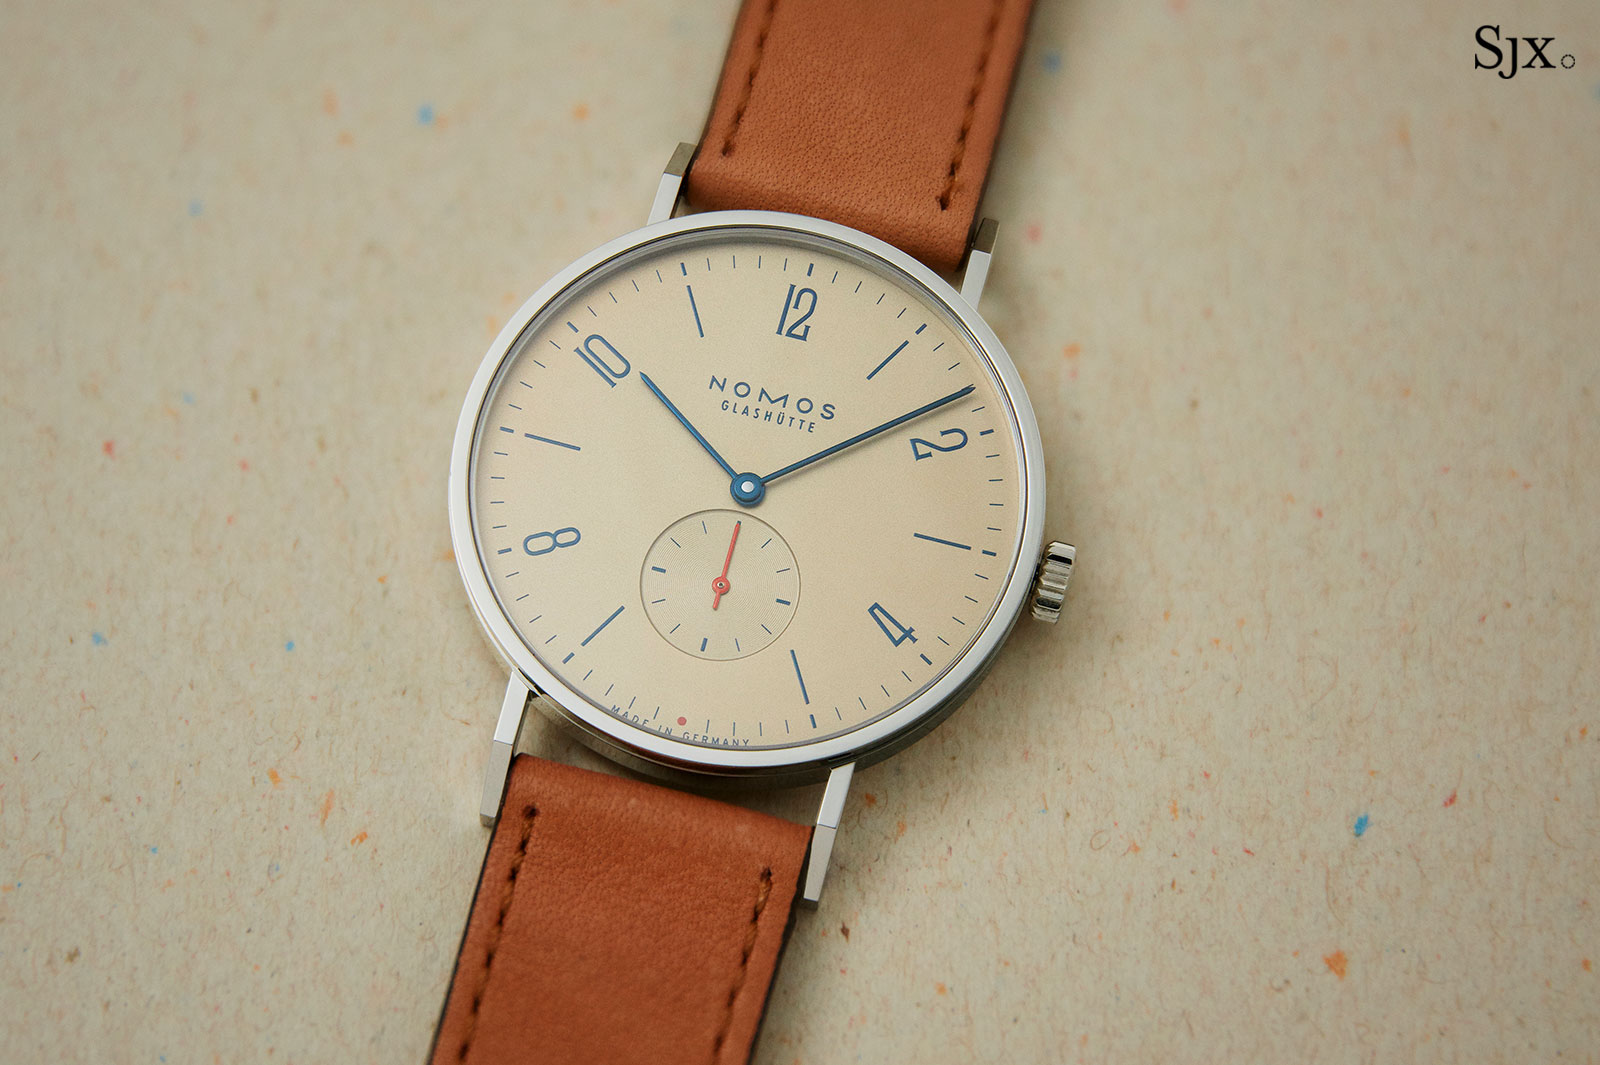 Nomos Tangente Red Dot Singapore salmon 1